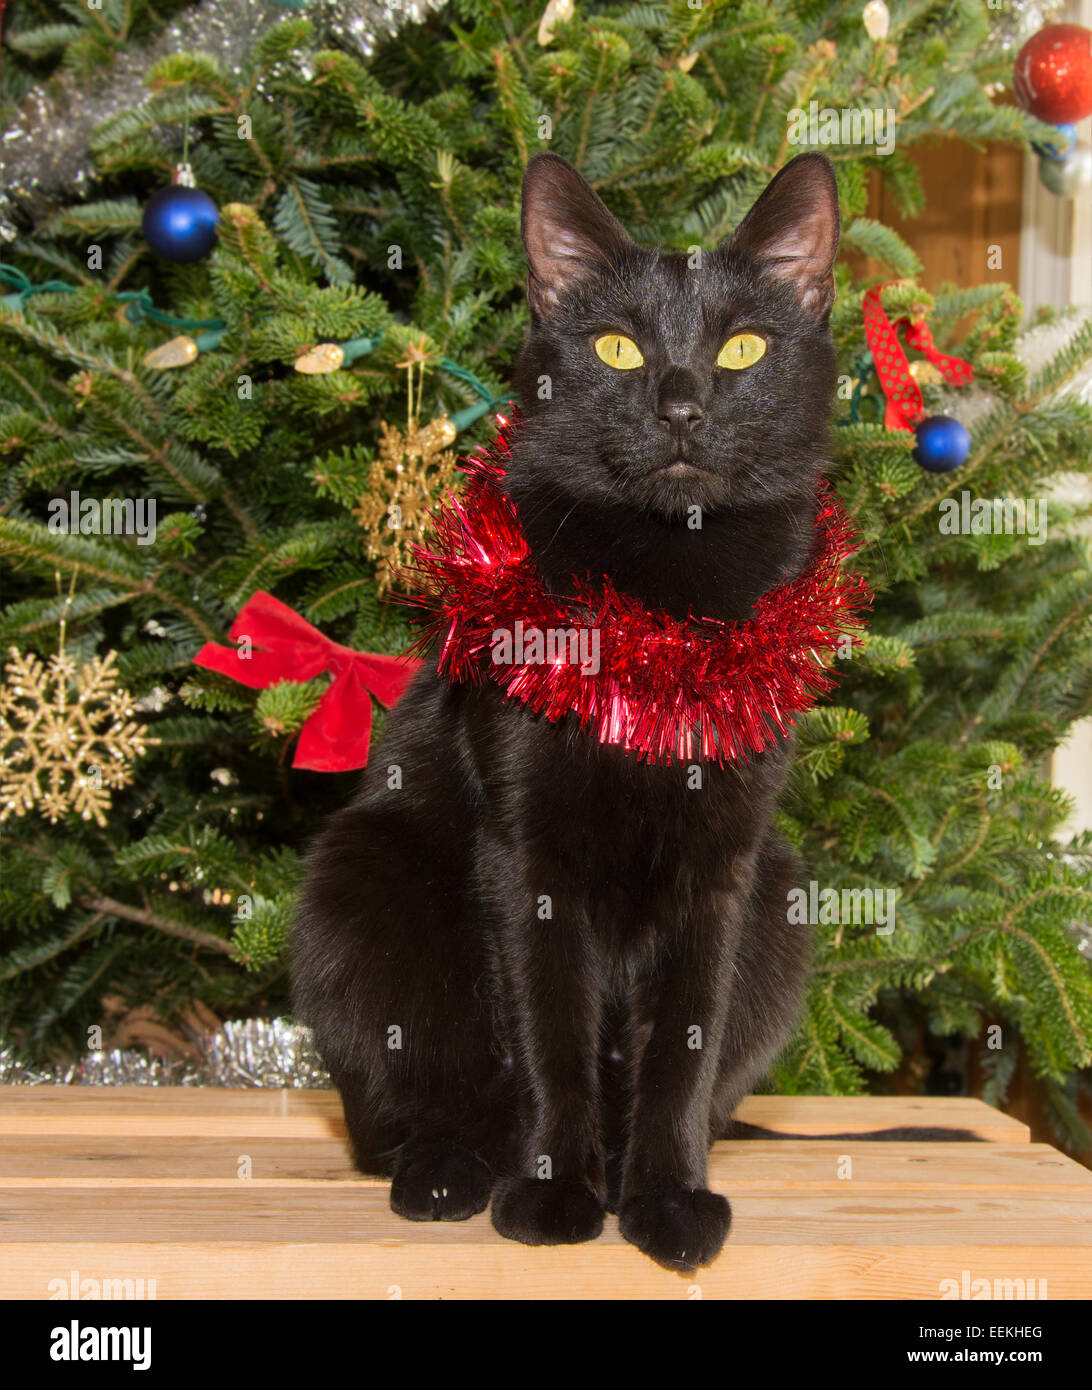 small black cat in front of a christmas tree wearing red tinsel around her neck - Black Cat Christmas Tree